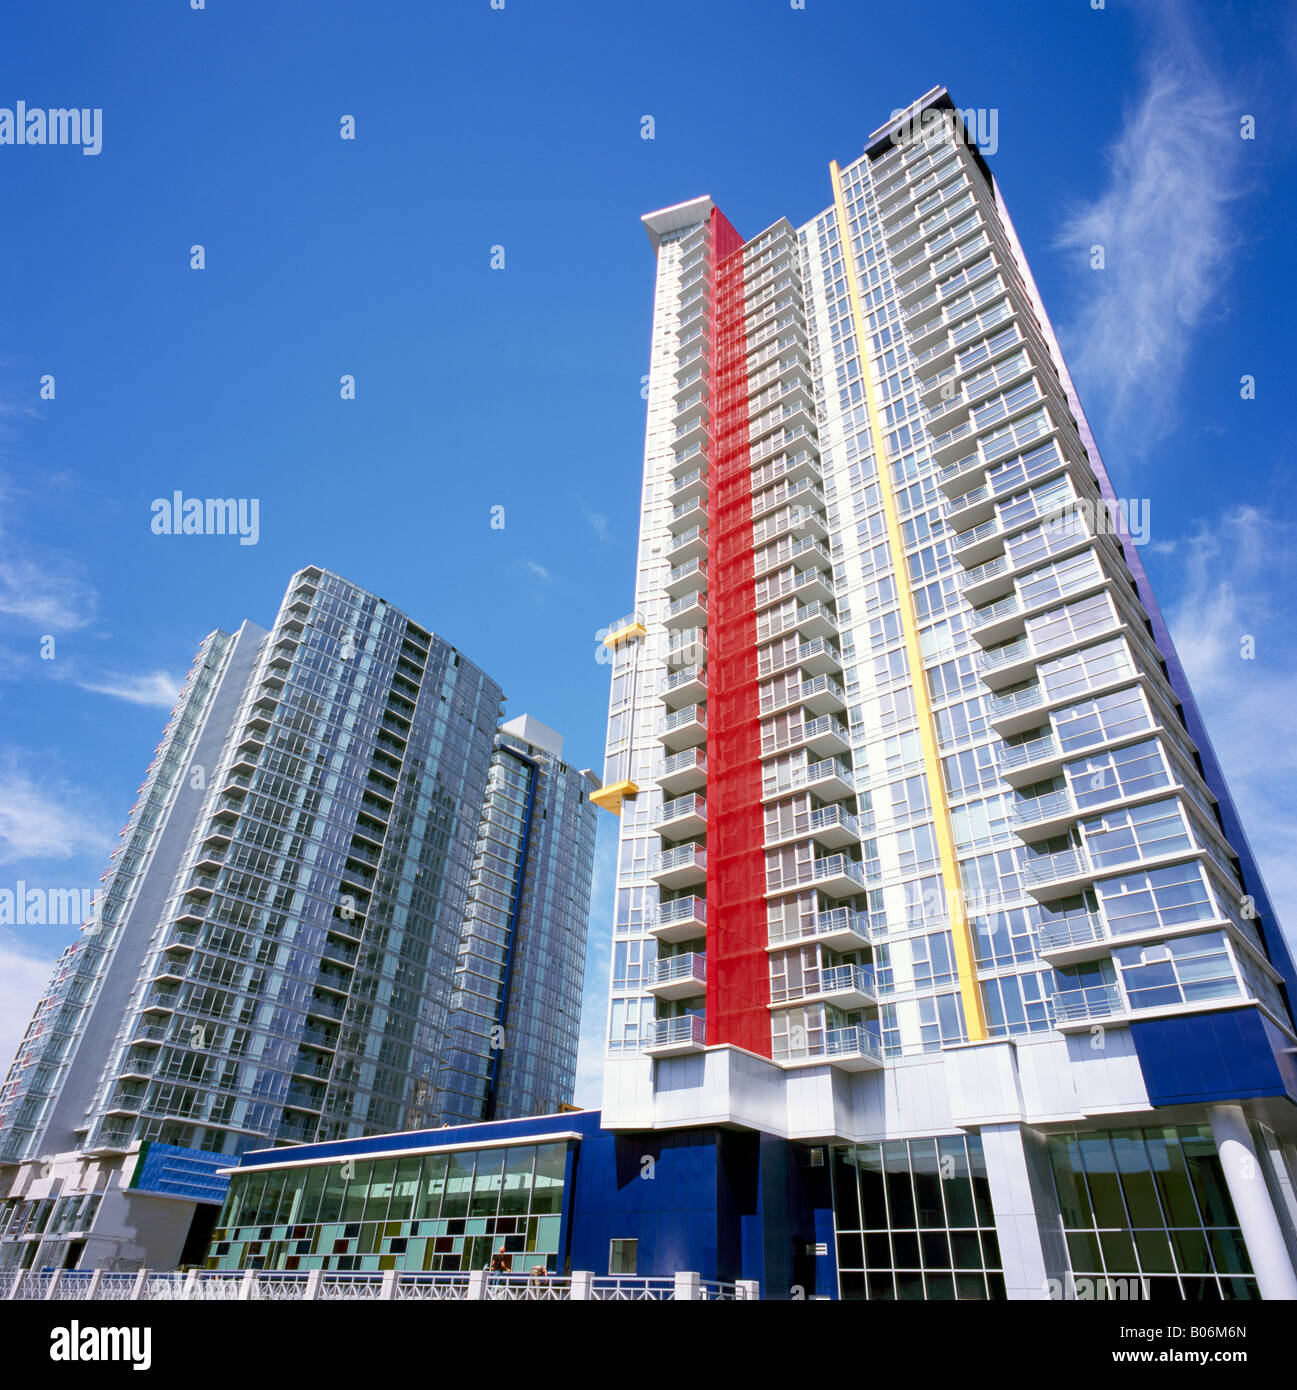 High Rise Apartment And Condominium Buildings Downtown In